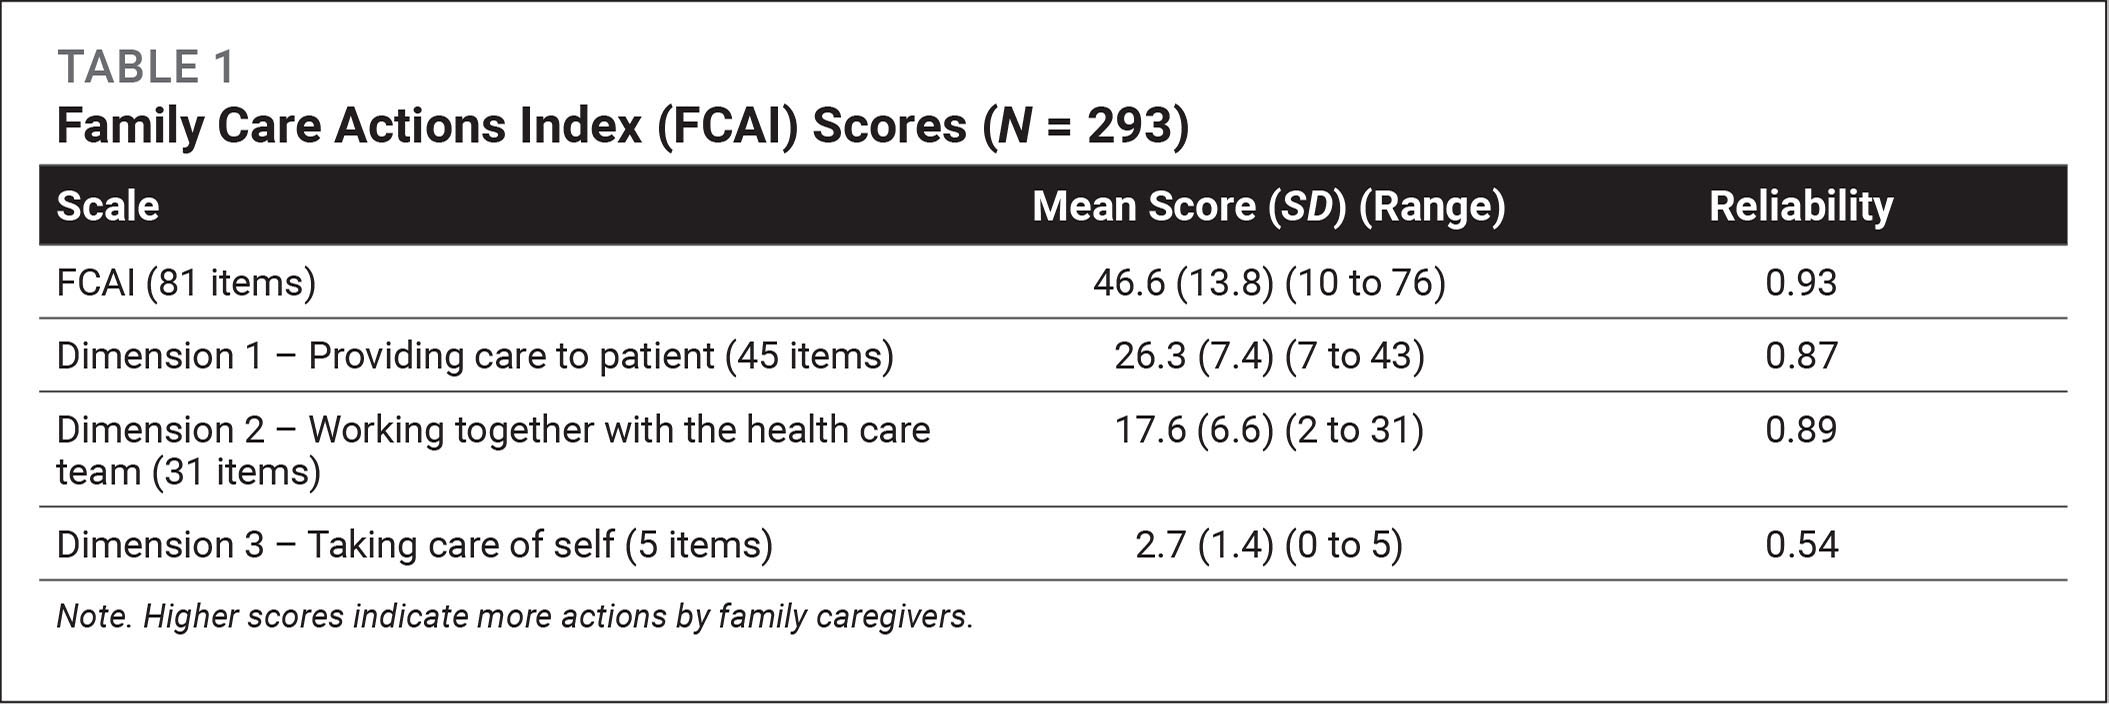 Family Care Actions Index (FCAI) Scores (N = 293)